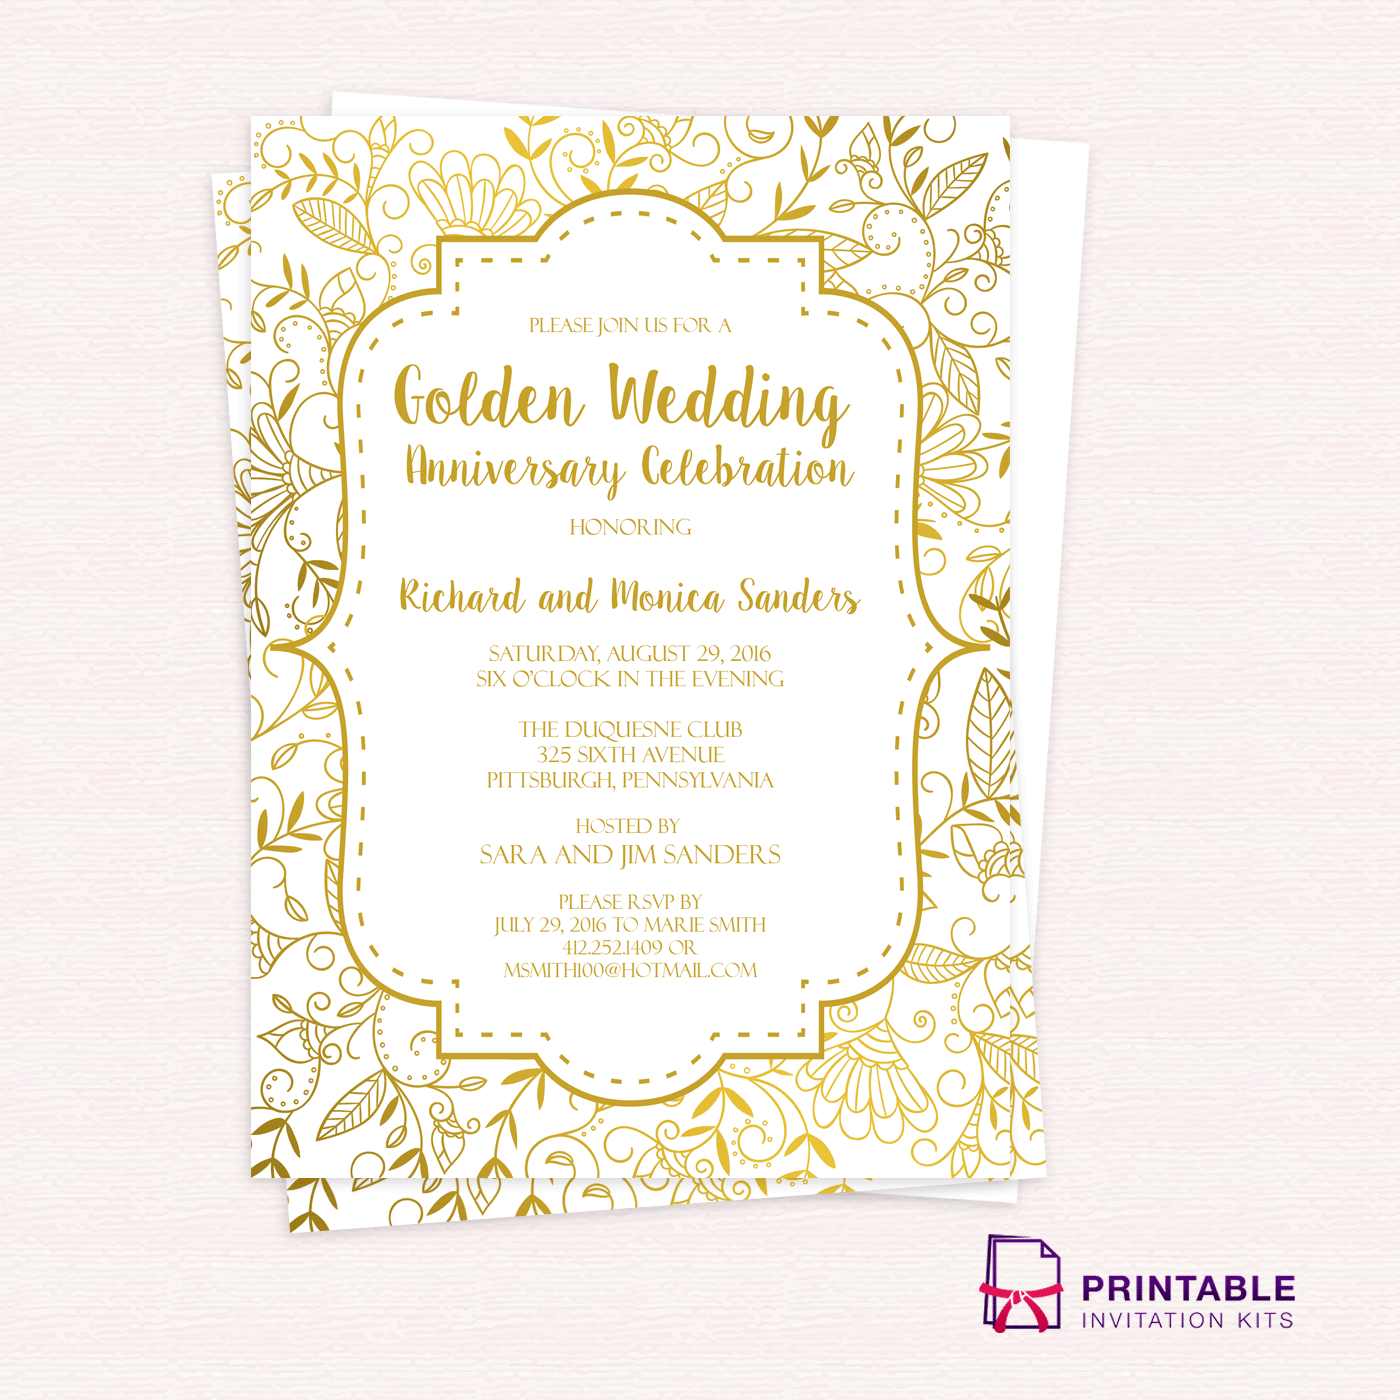 Golden Wedding Anniversary Invitation Template Wedding